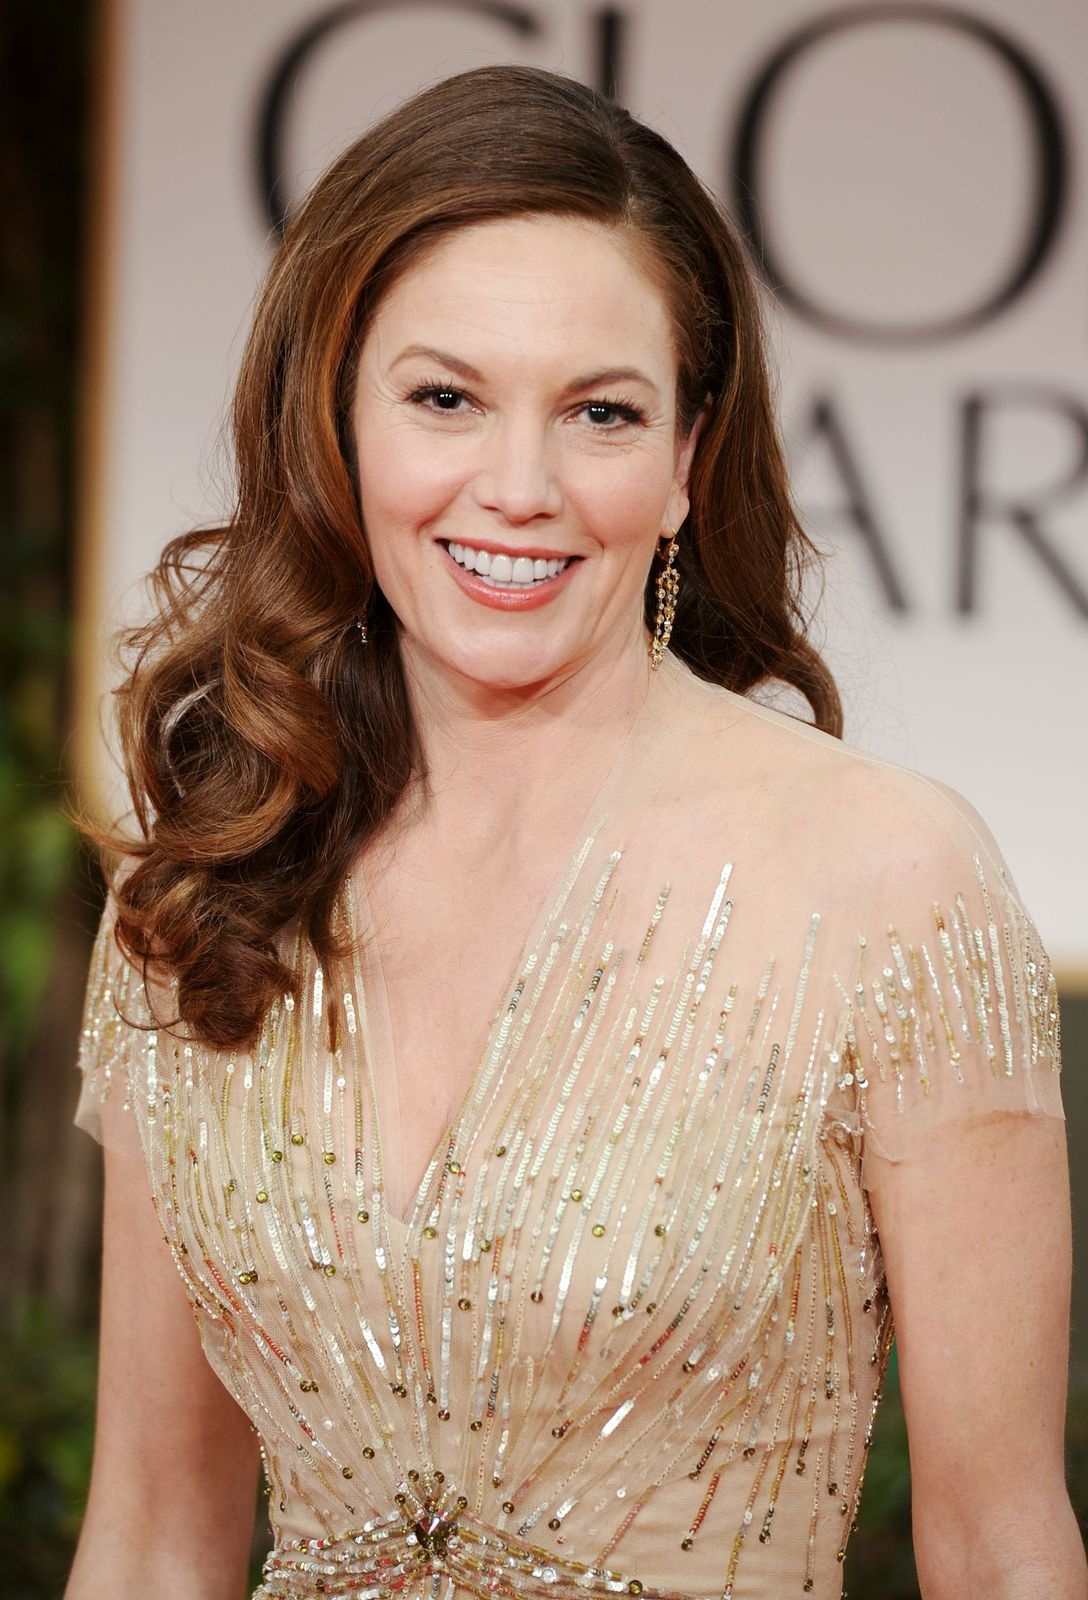 Actress Diane Lane at the 69th Annual Golden Globe Awards held at the Beverly Hilton Hotel on January 15, 2012 | Photo: Getty Images